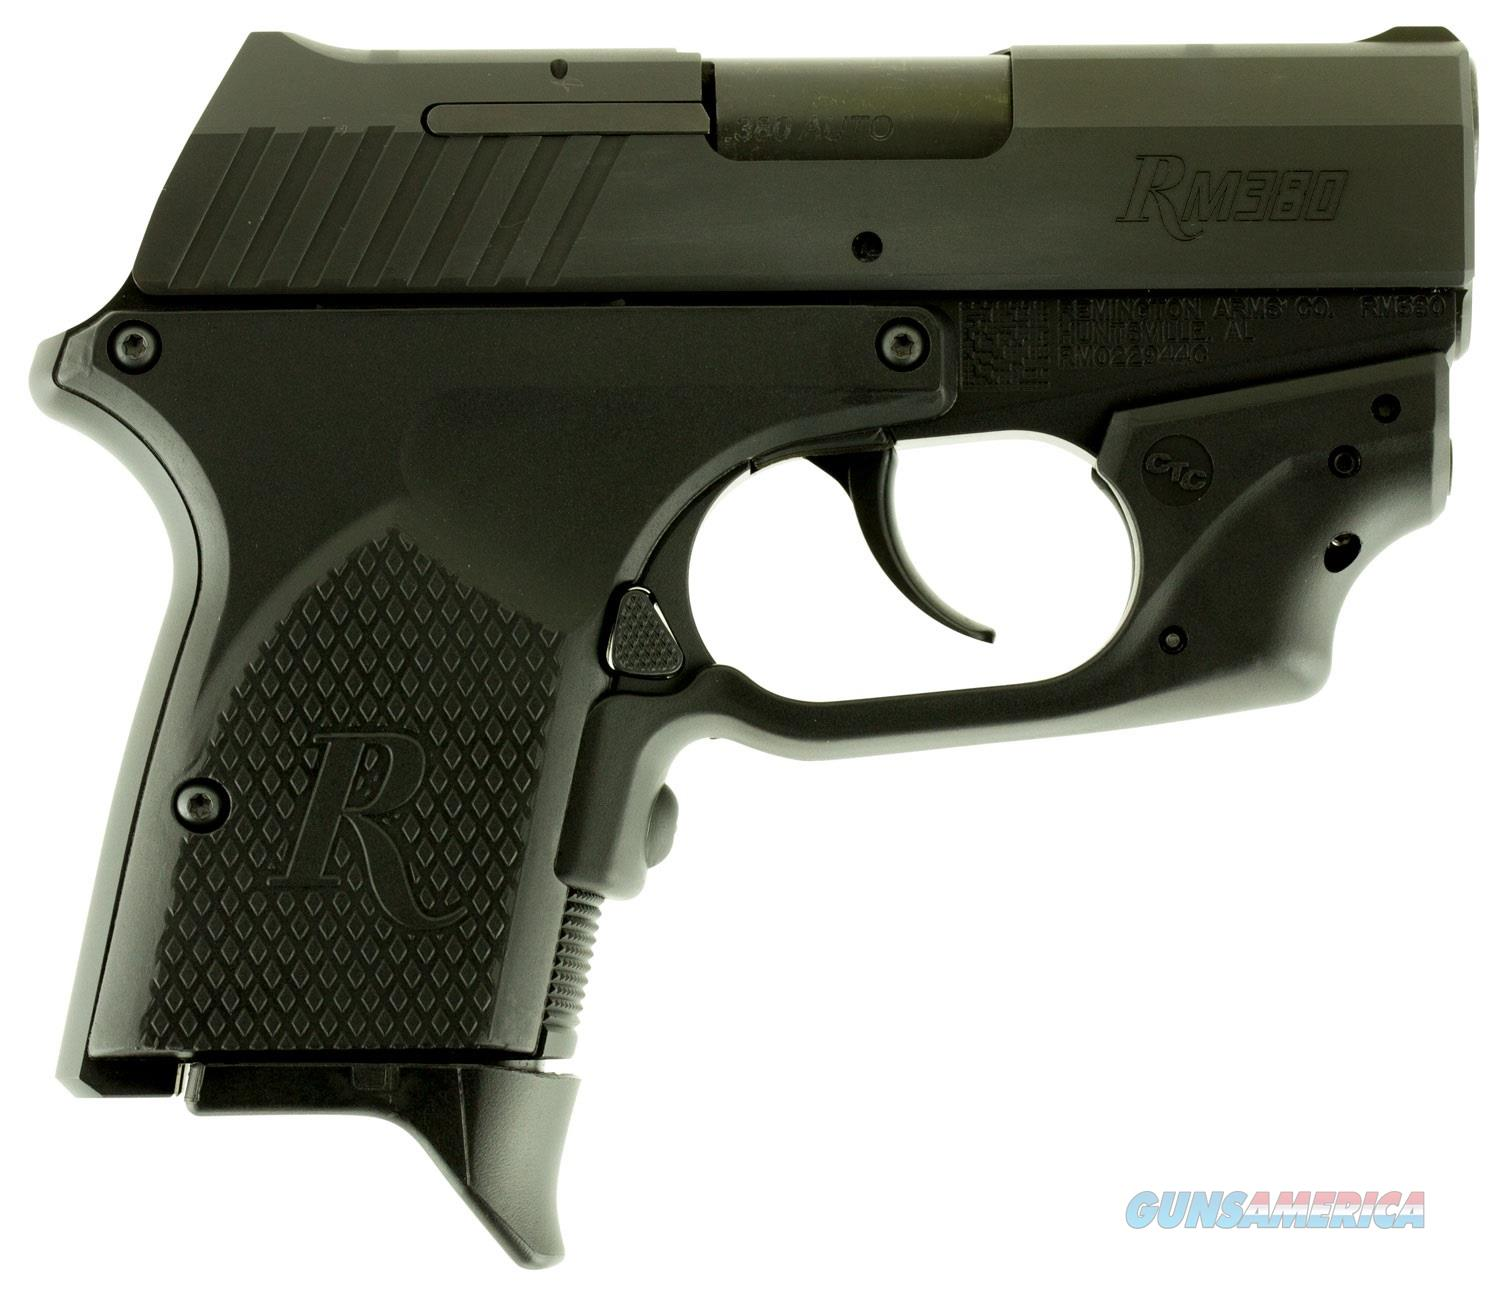 "96462 Remington RM380 Micro Crimson Trace DAO 380 ACP 2.9"" FS w/Laser 6+1 Black Poly Grip Black  Guns > Pistols > Remington Pistols - Modern > RM380"